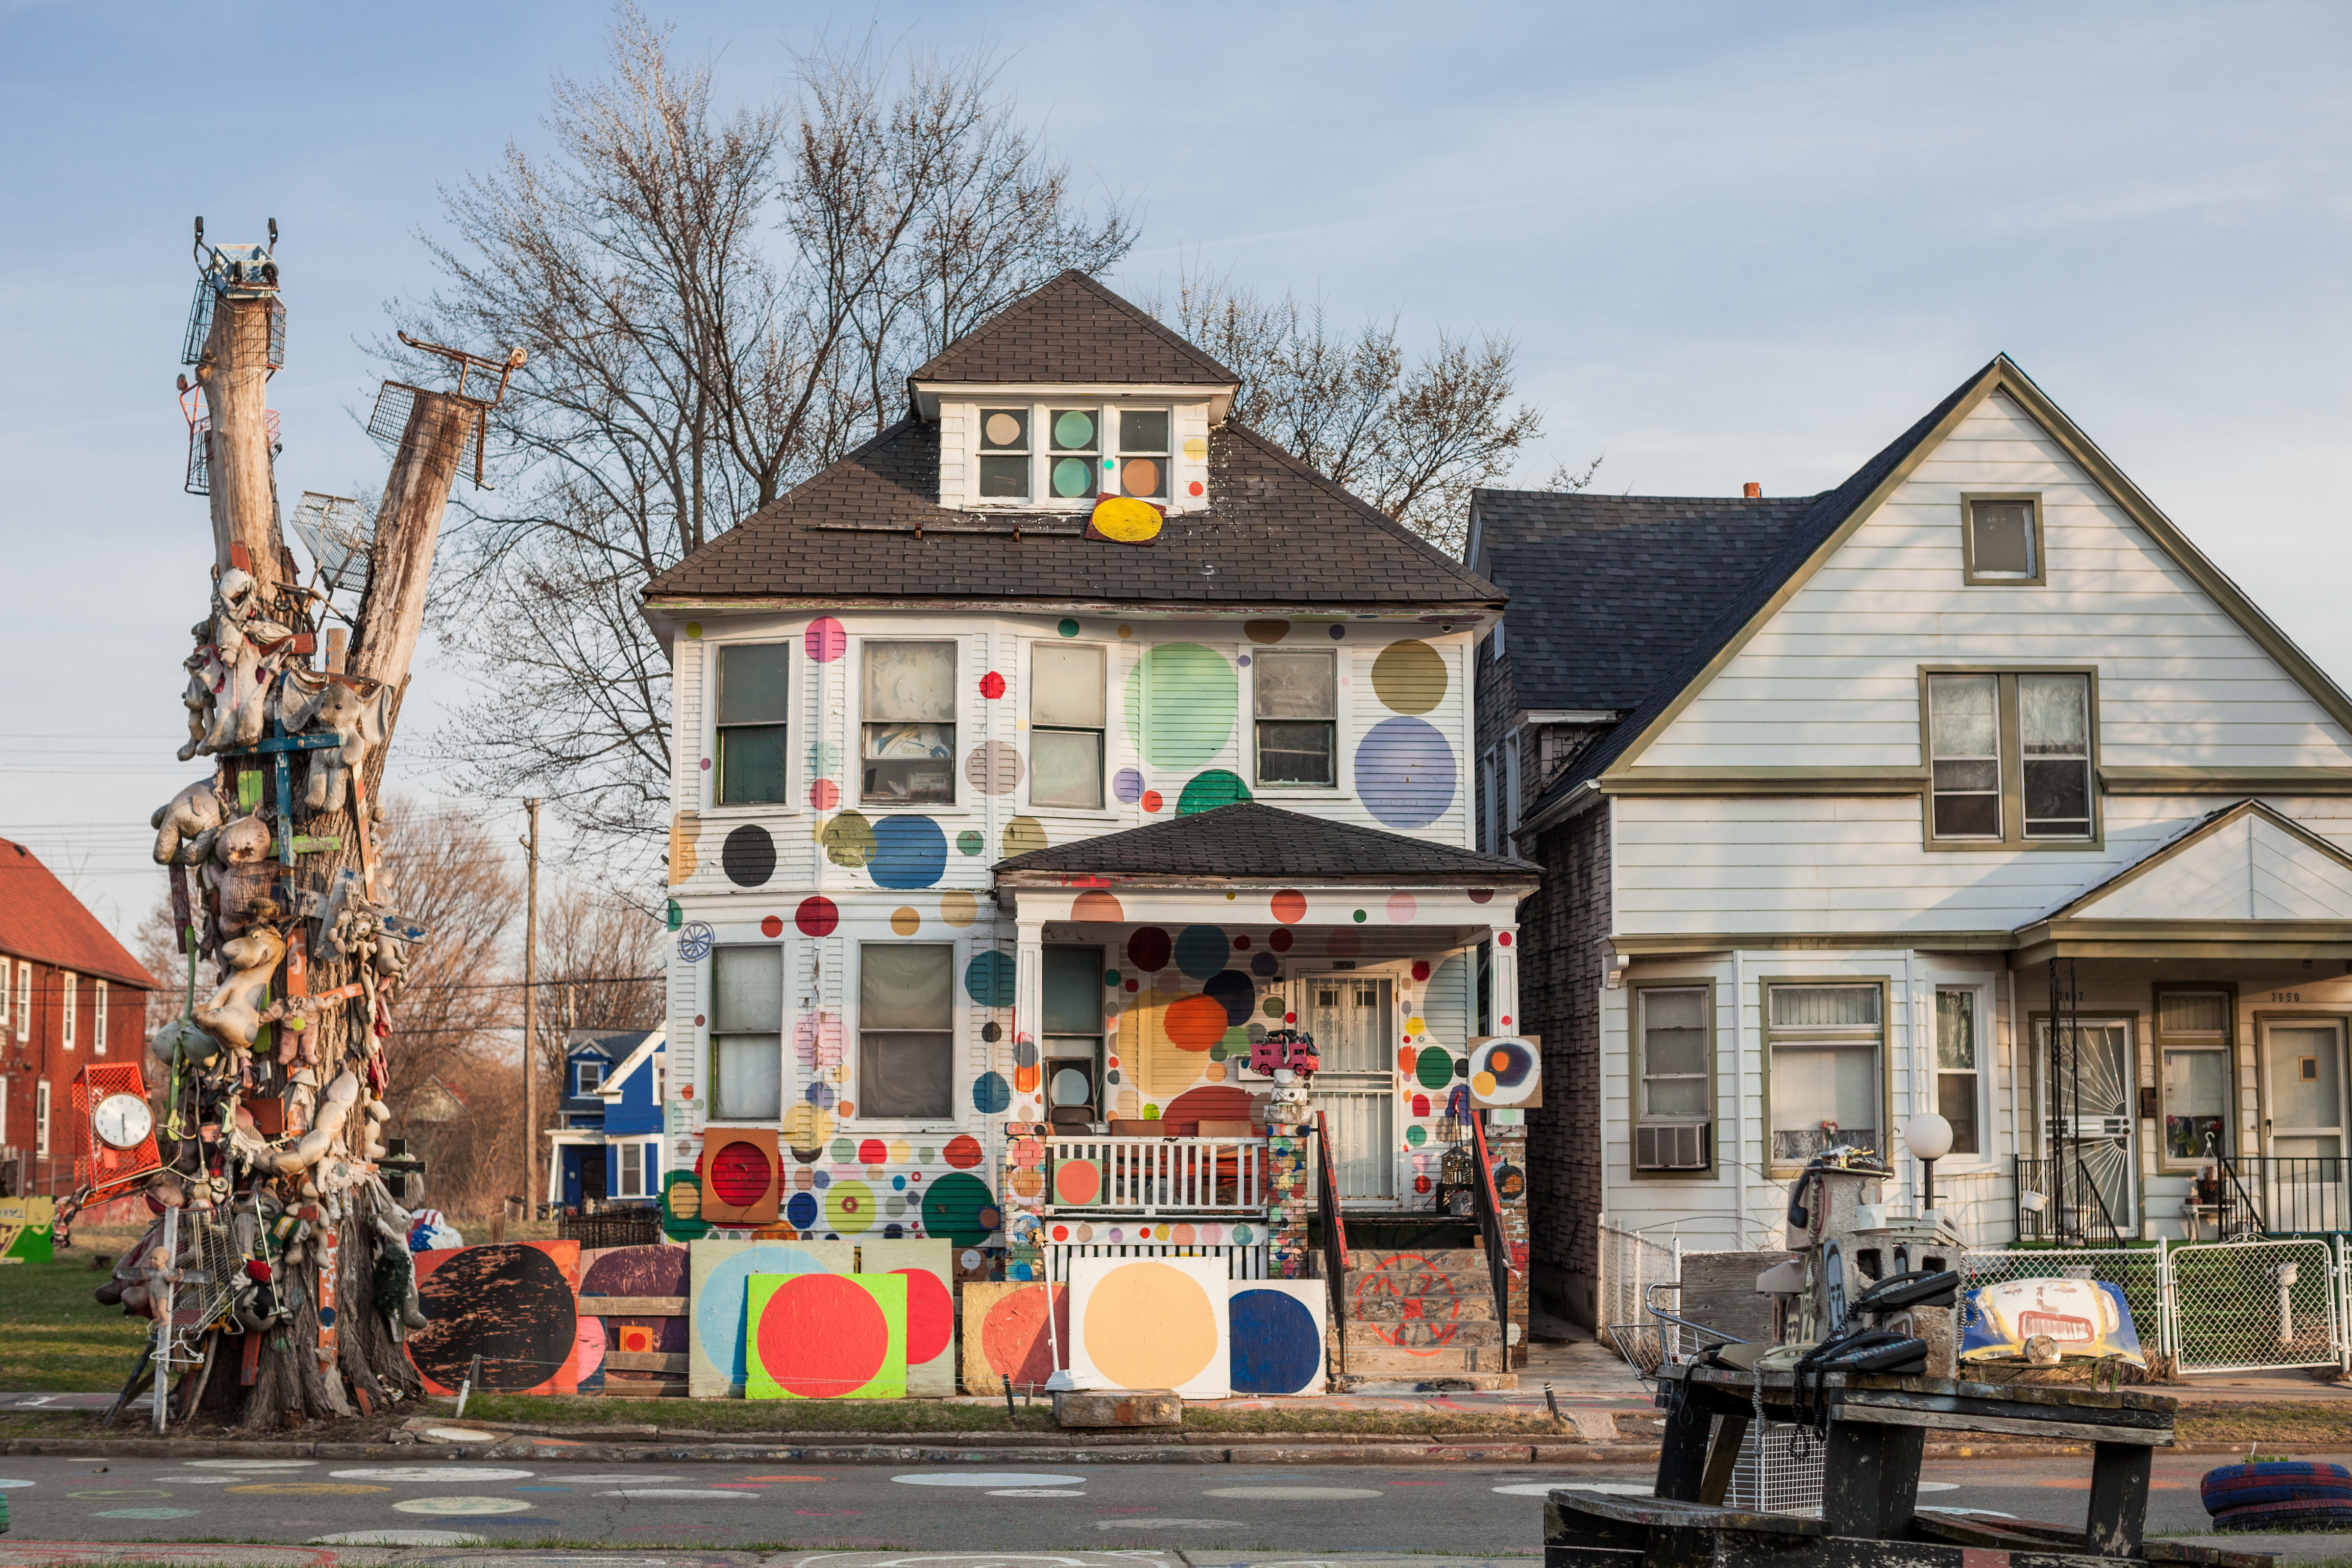 An old white foursquare house with with rainbow colored dots of different sizes painted on the siding and different found objects hanging off a dead tree next to the street.